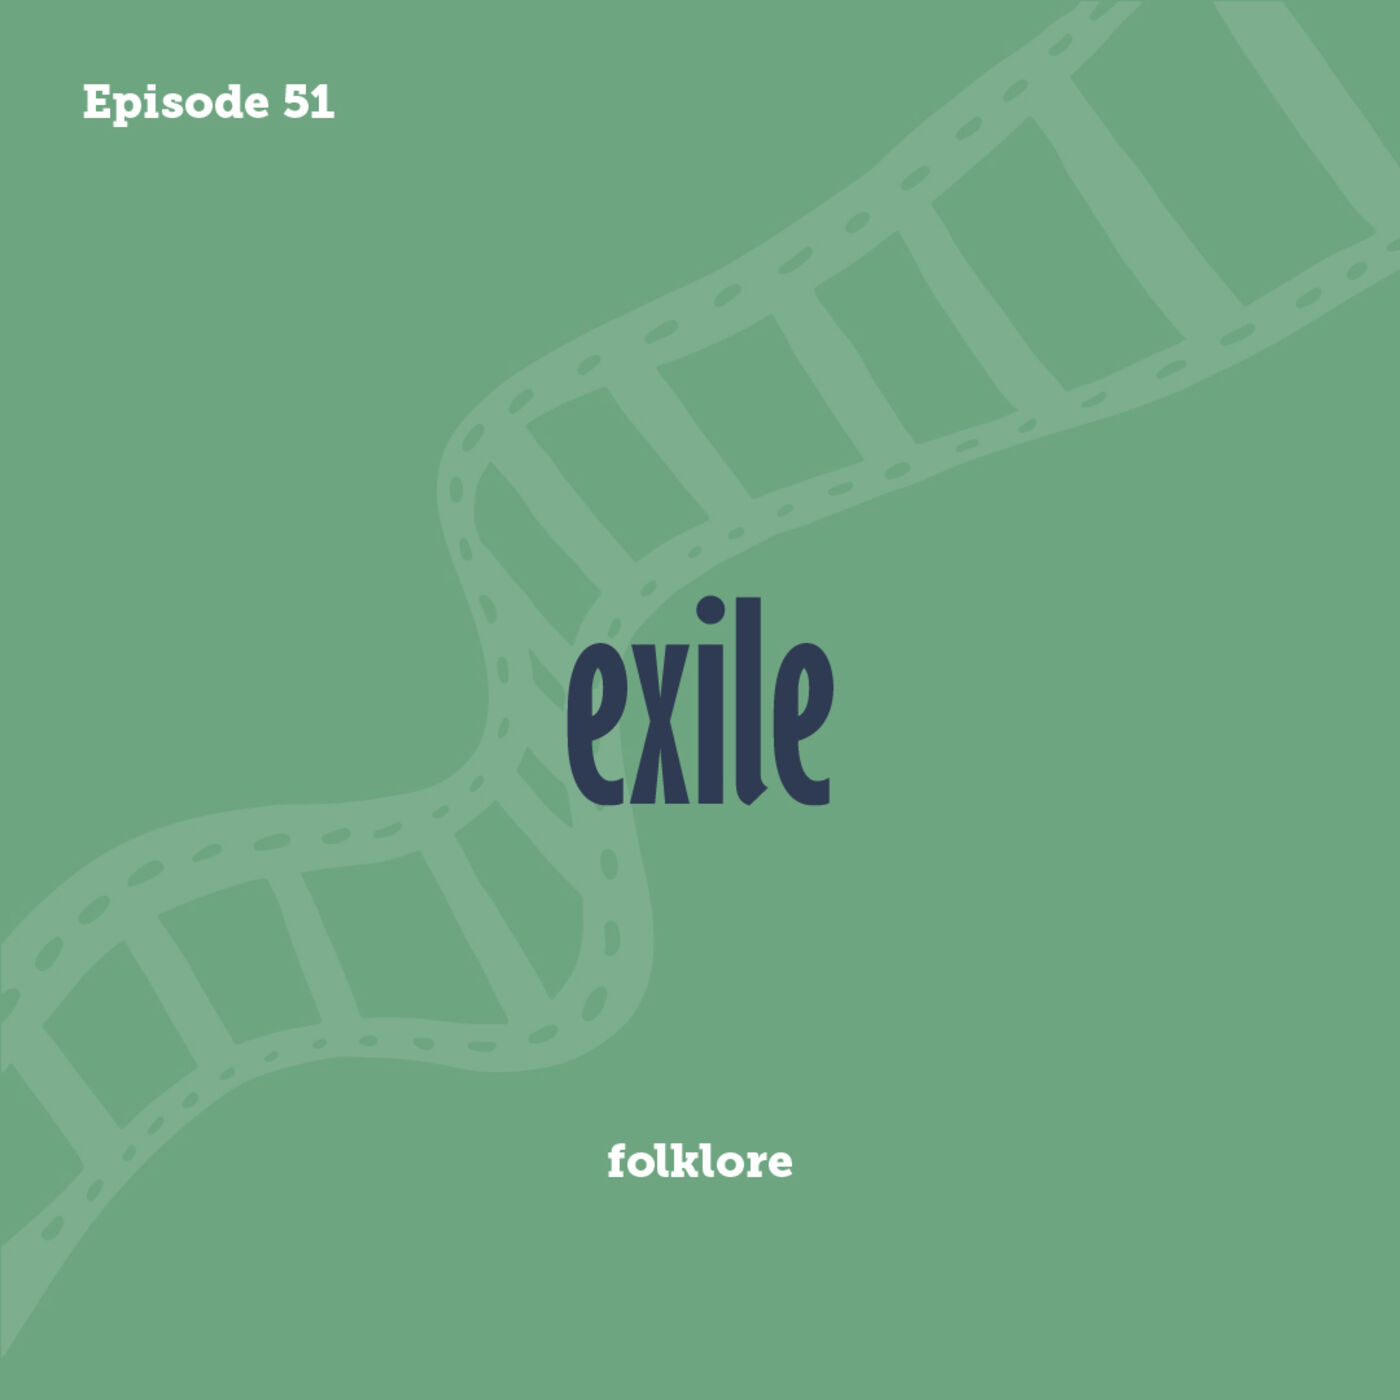 Tay to Z Episode 51: exile